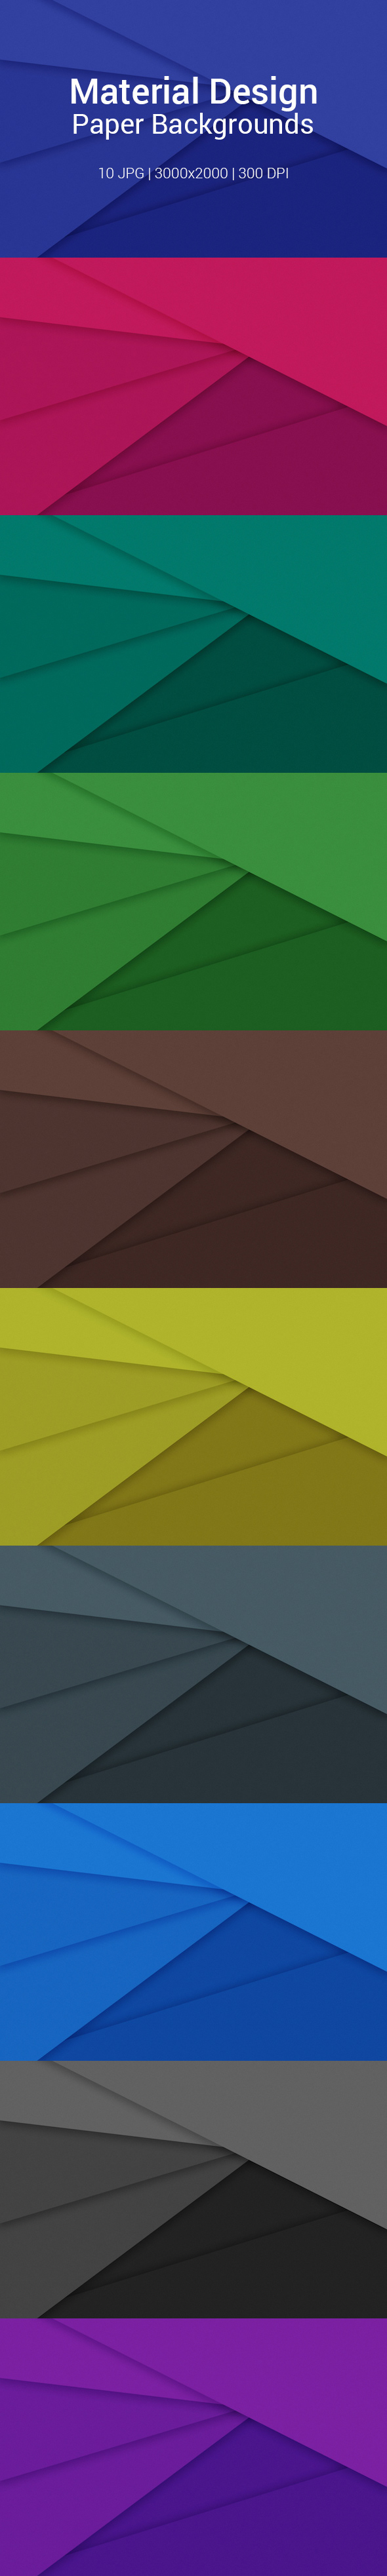 material design android backgrounds modern colorful paper abstract app Website geometric